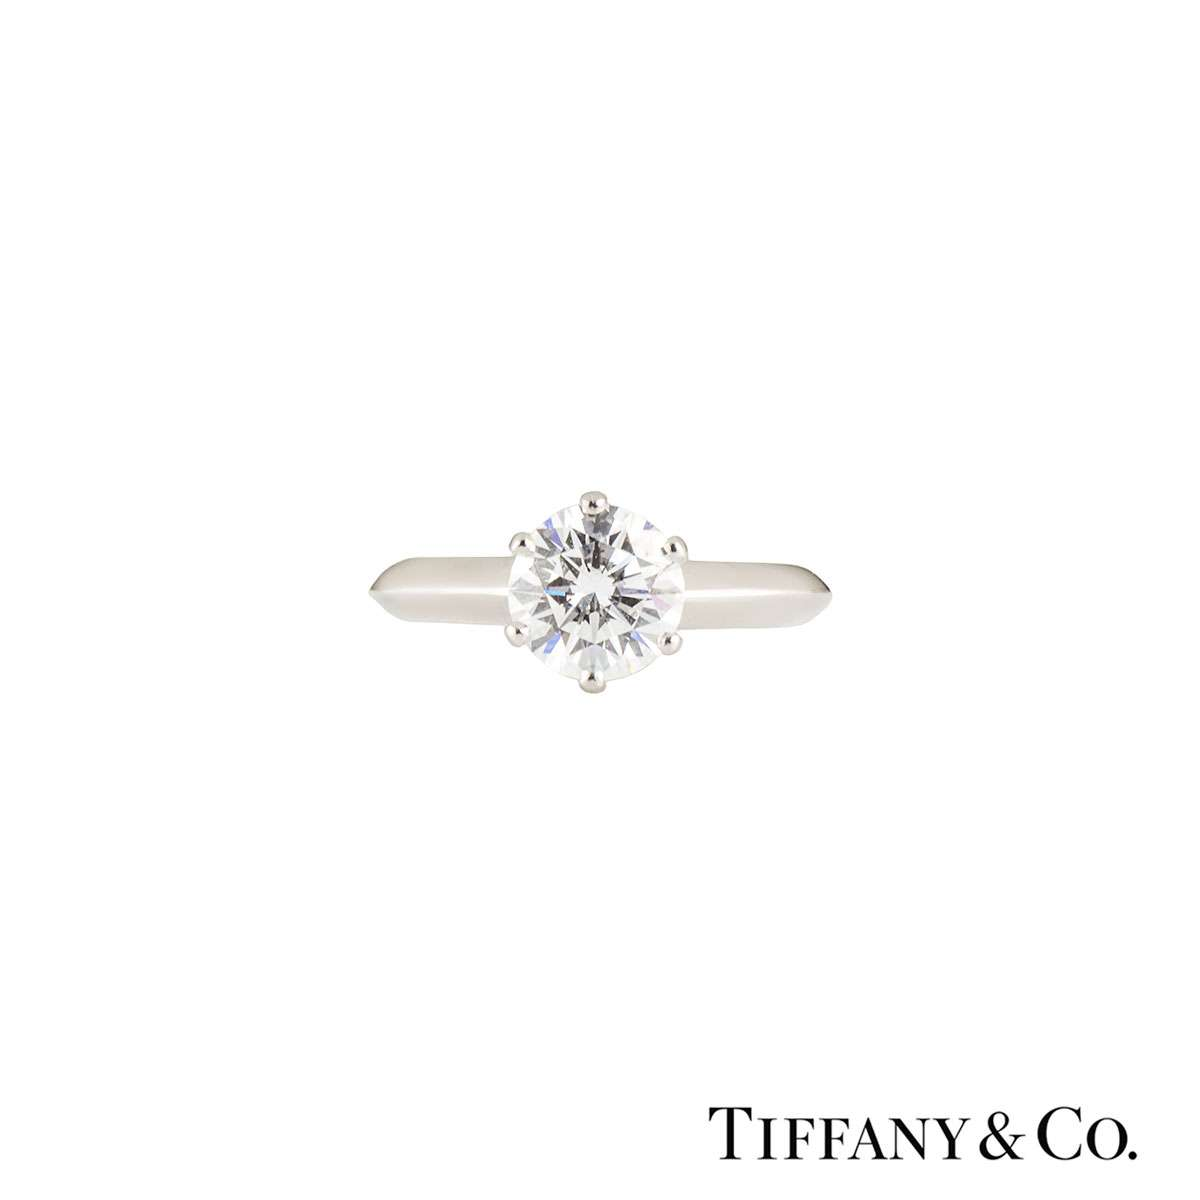 Tiffany & Co. Platinum Diamond Setting Band Ring 1.16ct H/VS1